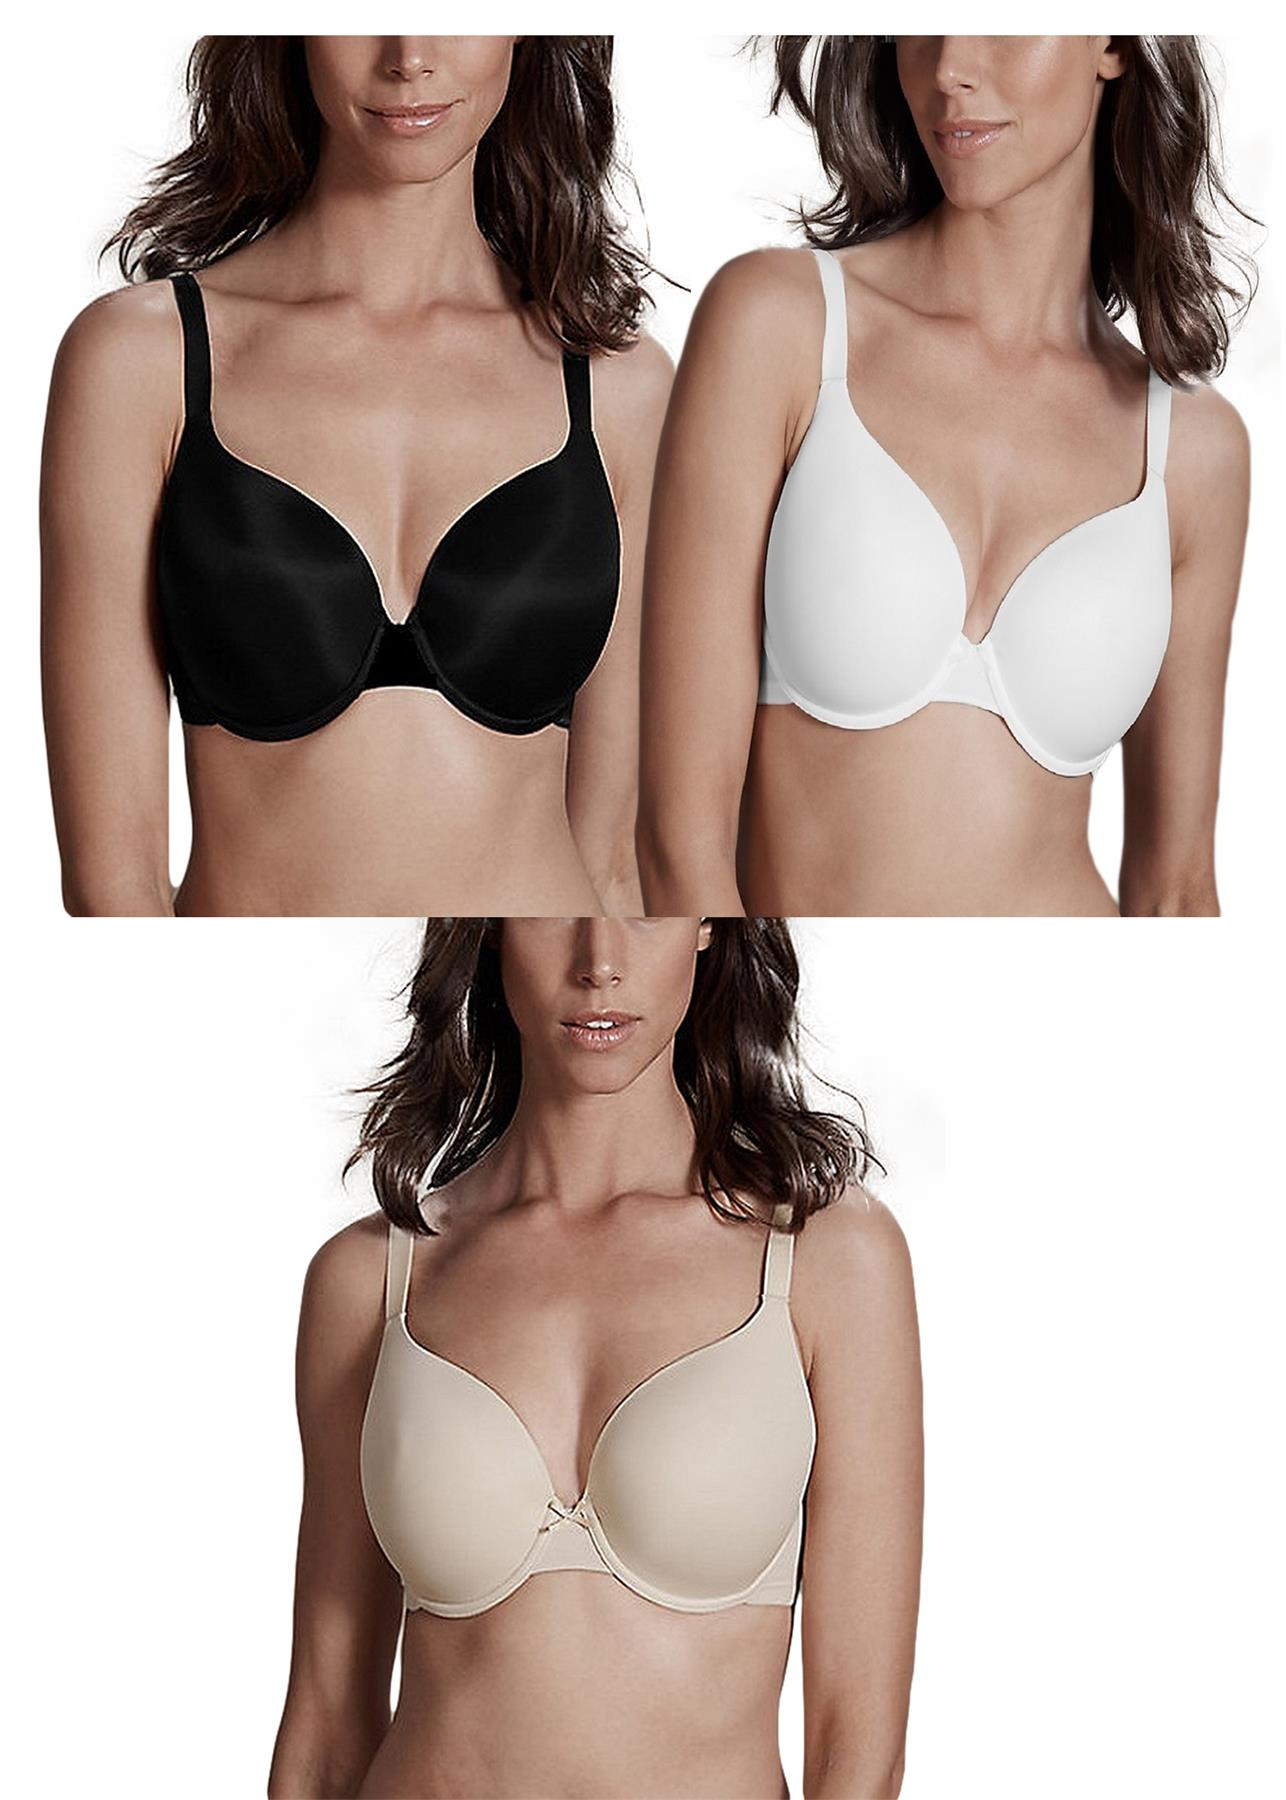 Beauforme Full Moulded Cup T Shirt Bra Detachable Straps Style 42 Size 32-40